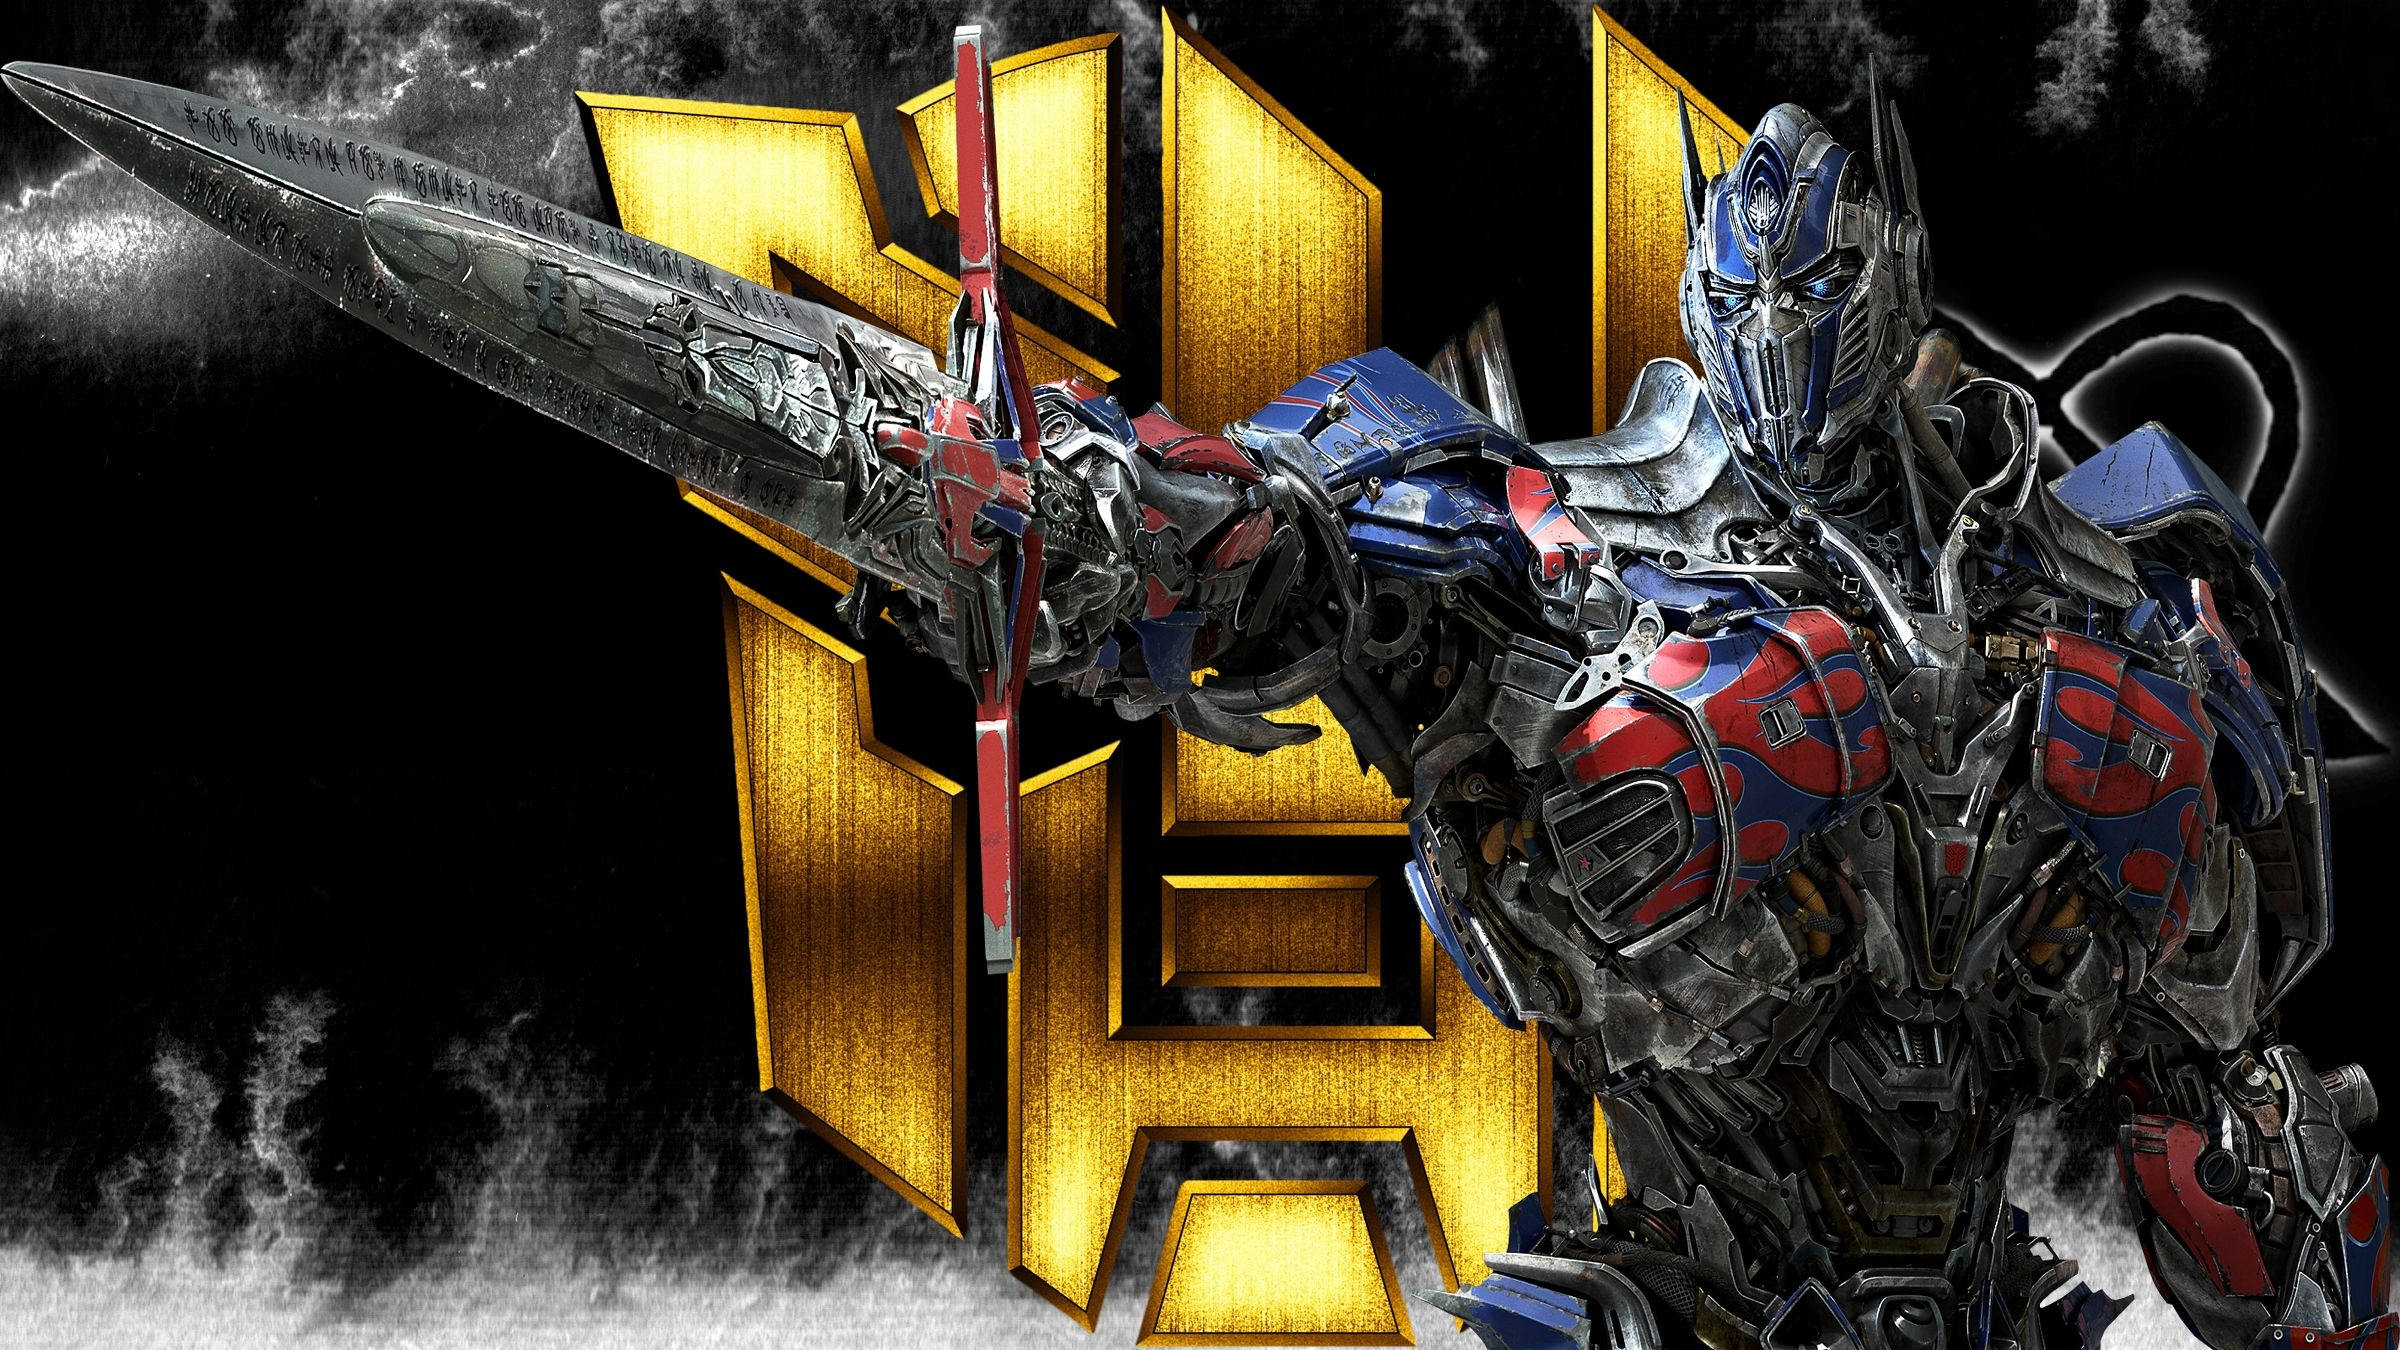 optimus prime wallpaper download - photo #5